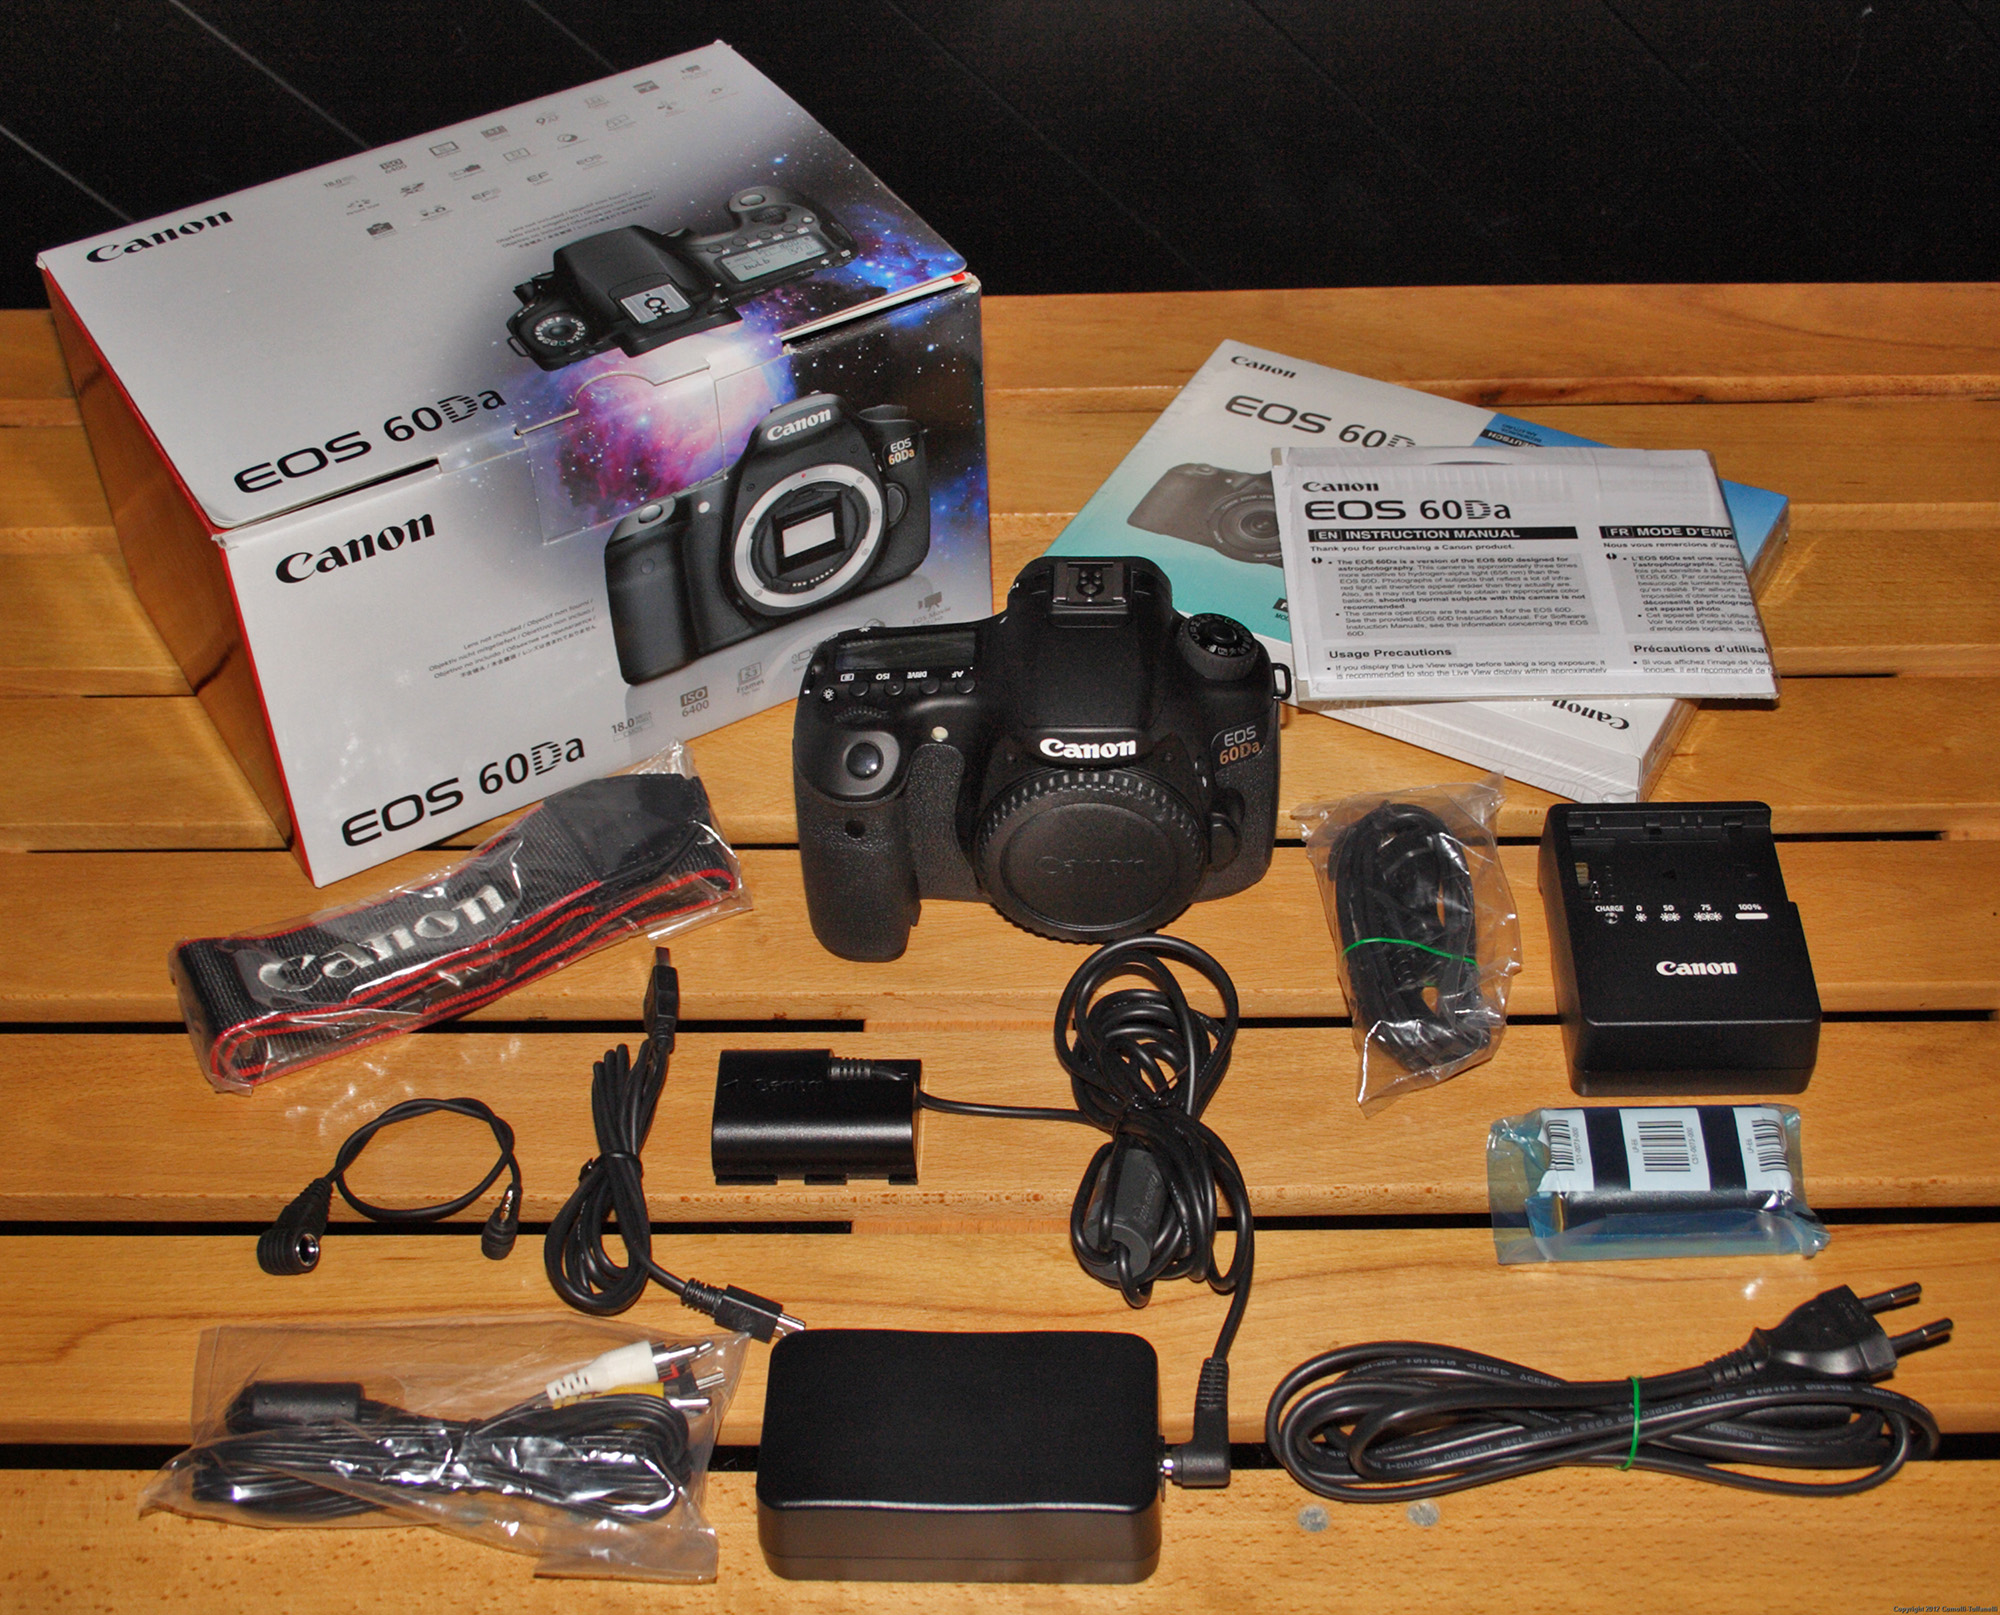 canon eos 60da the return to astrophotography user reviews rh cloudynights com Canon EOS 30D canon eos 20d manual